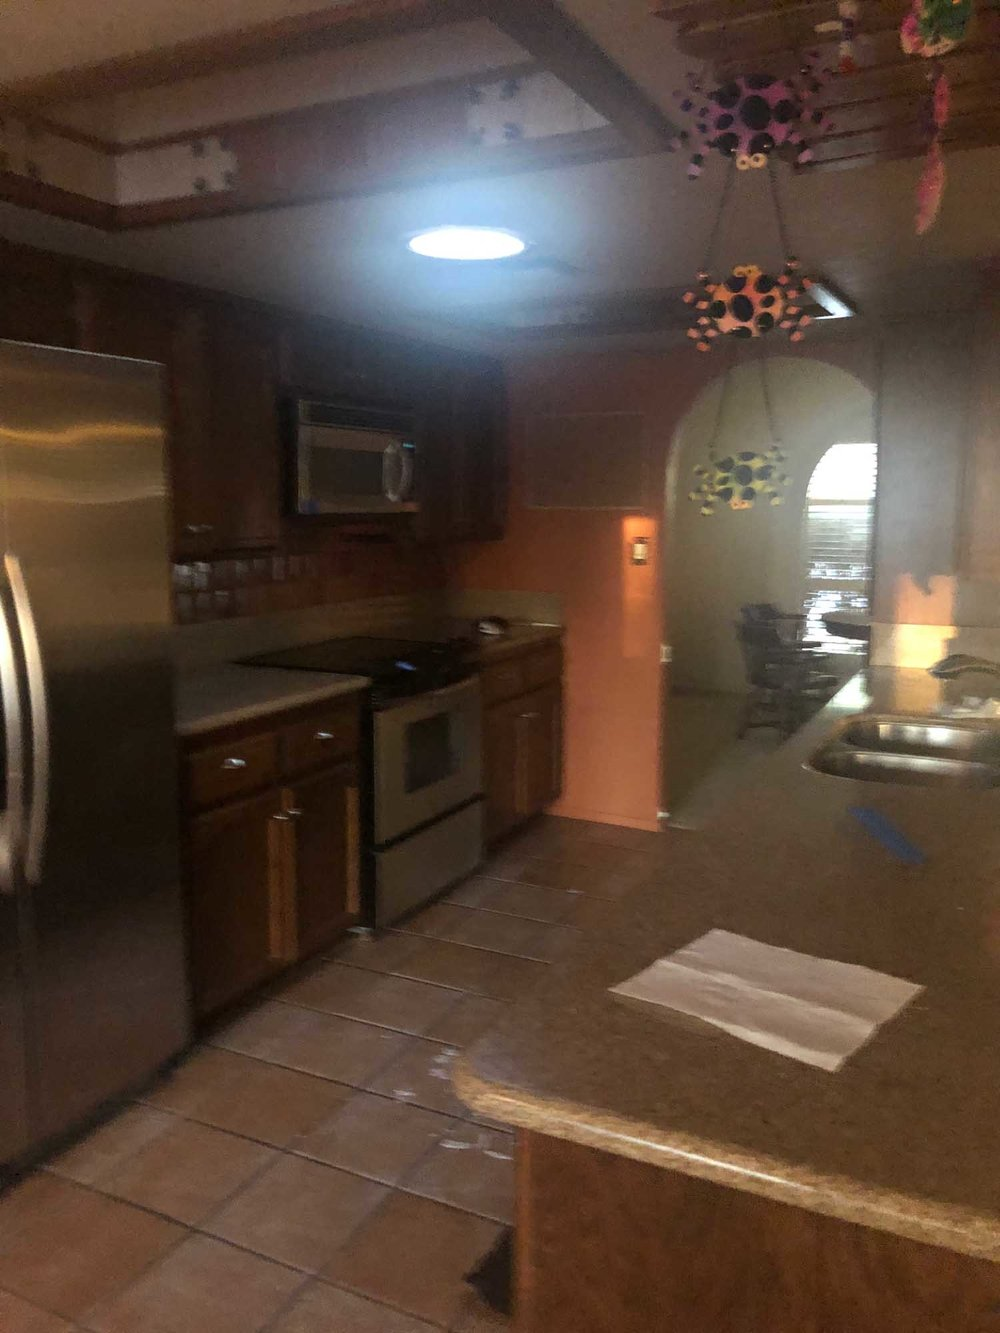 Old Kitchen appliances and cabinets